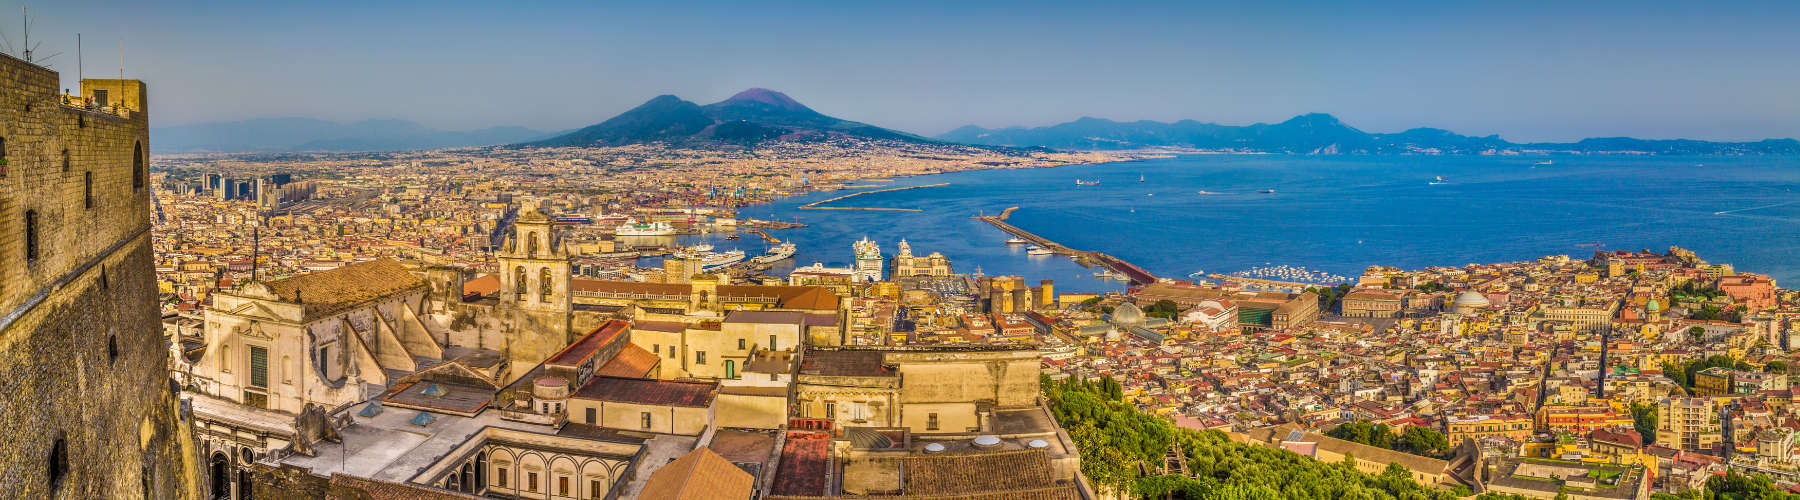 18 points of interest in naples, italy | catacombs, beaches